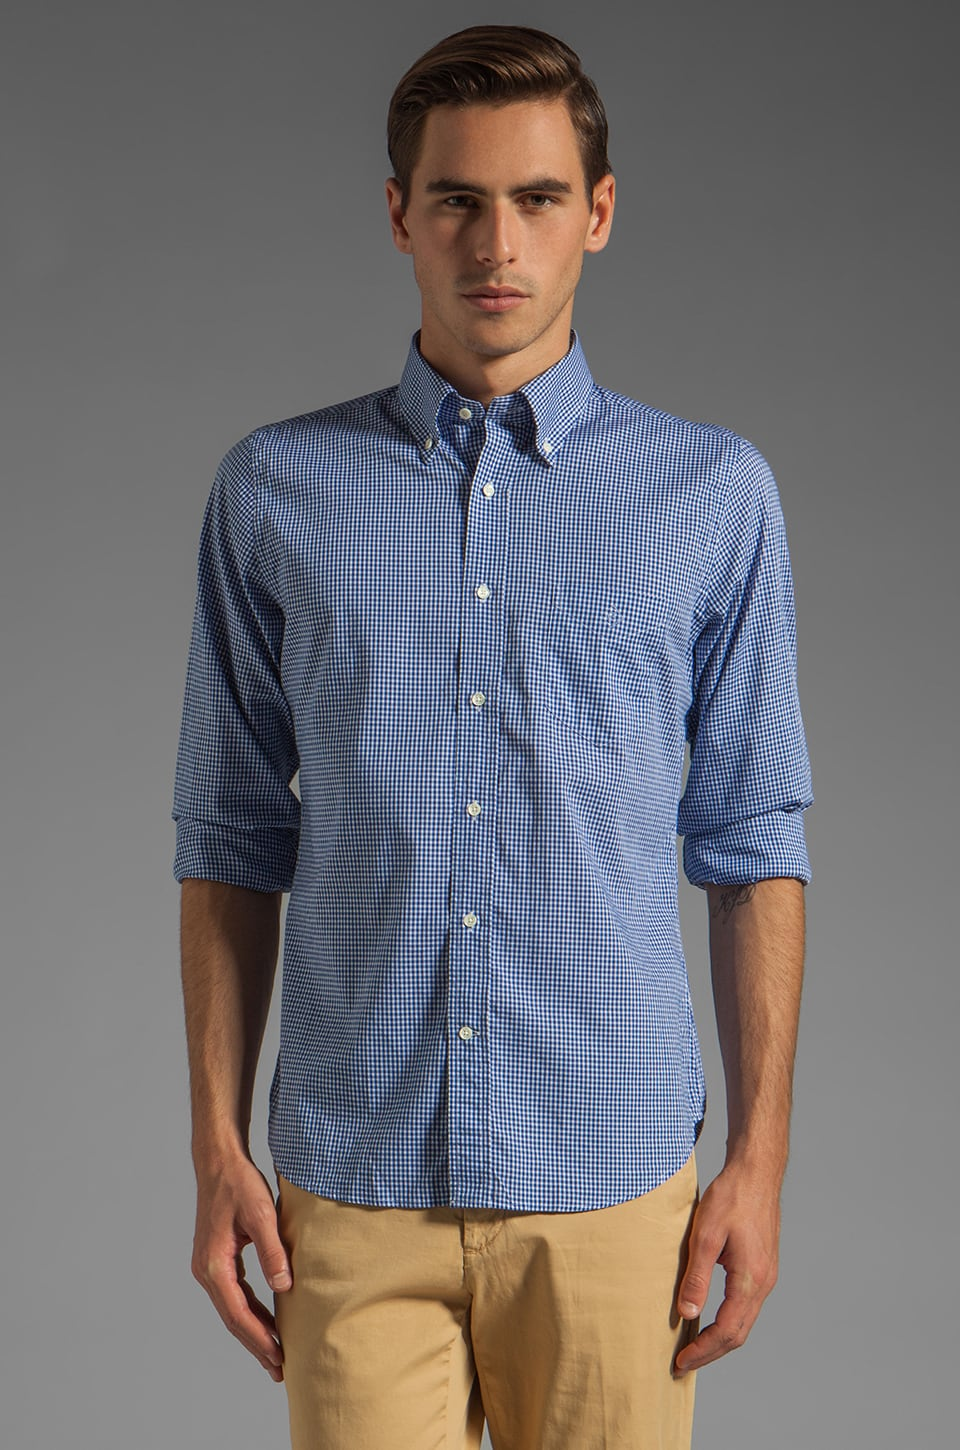 GANT Rugger Imported Fabric Gingham HOBD Shirt in Blue